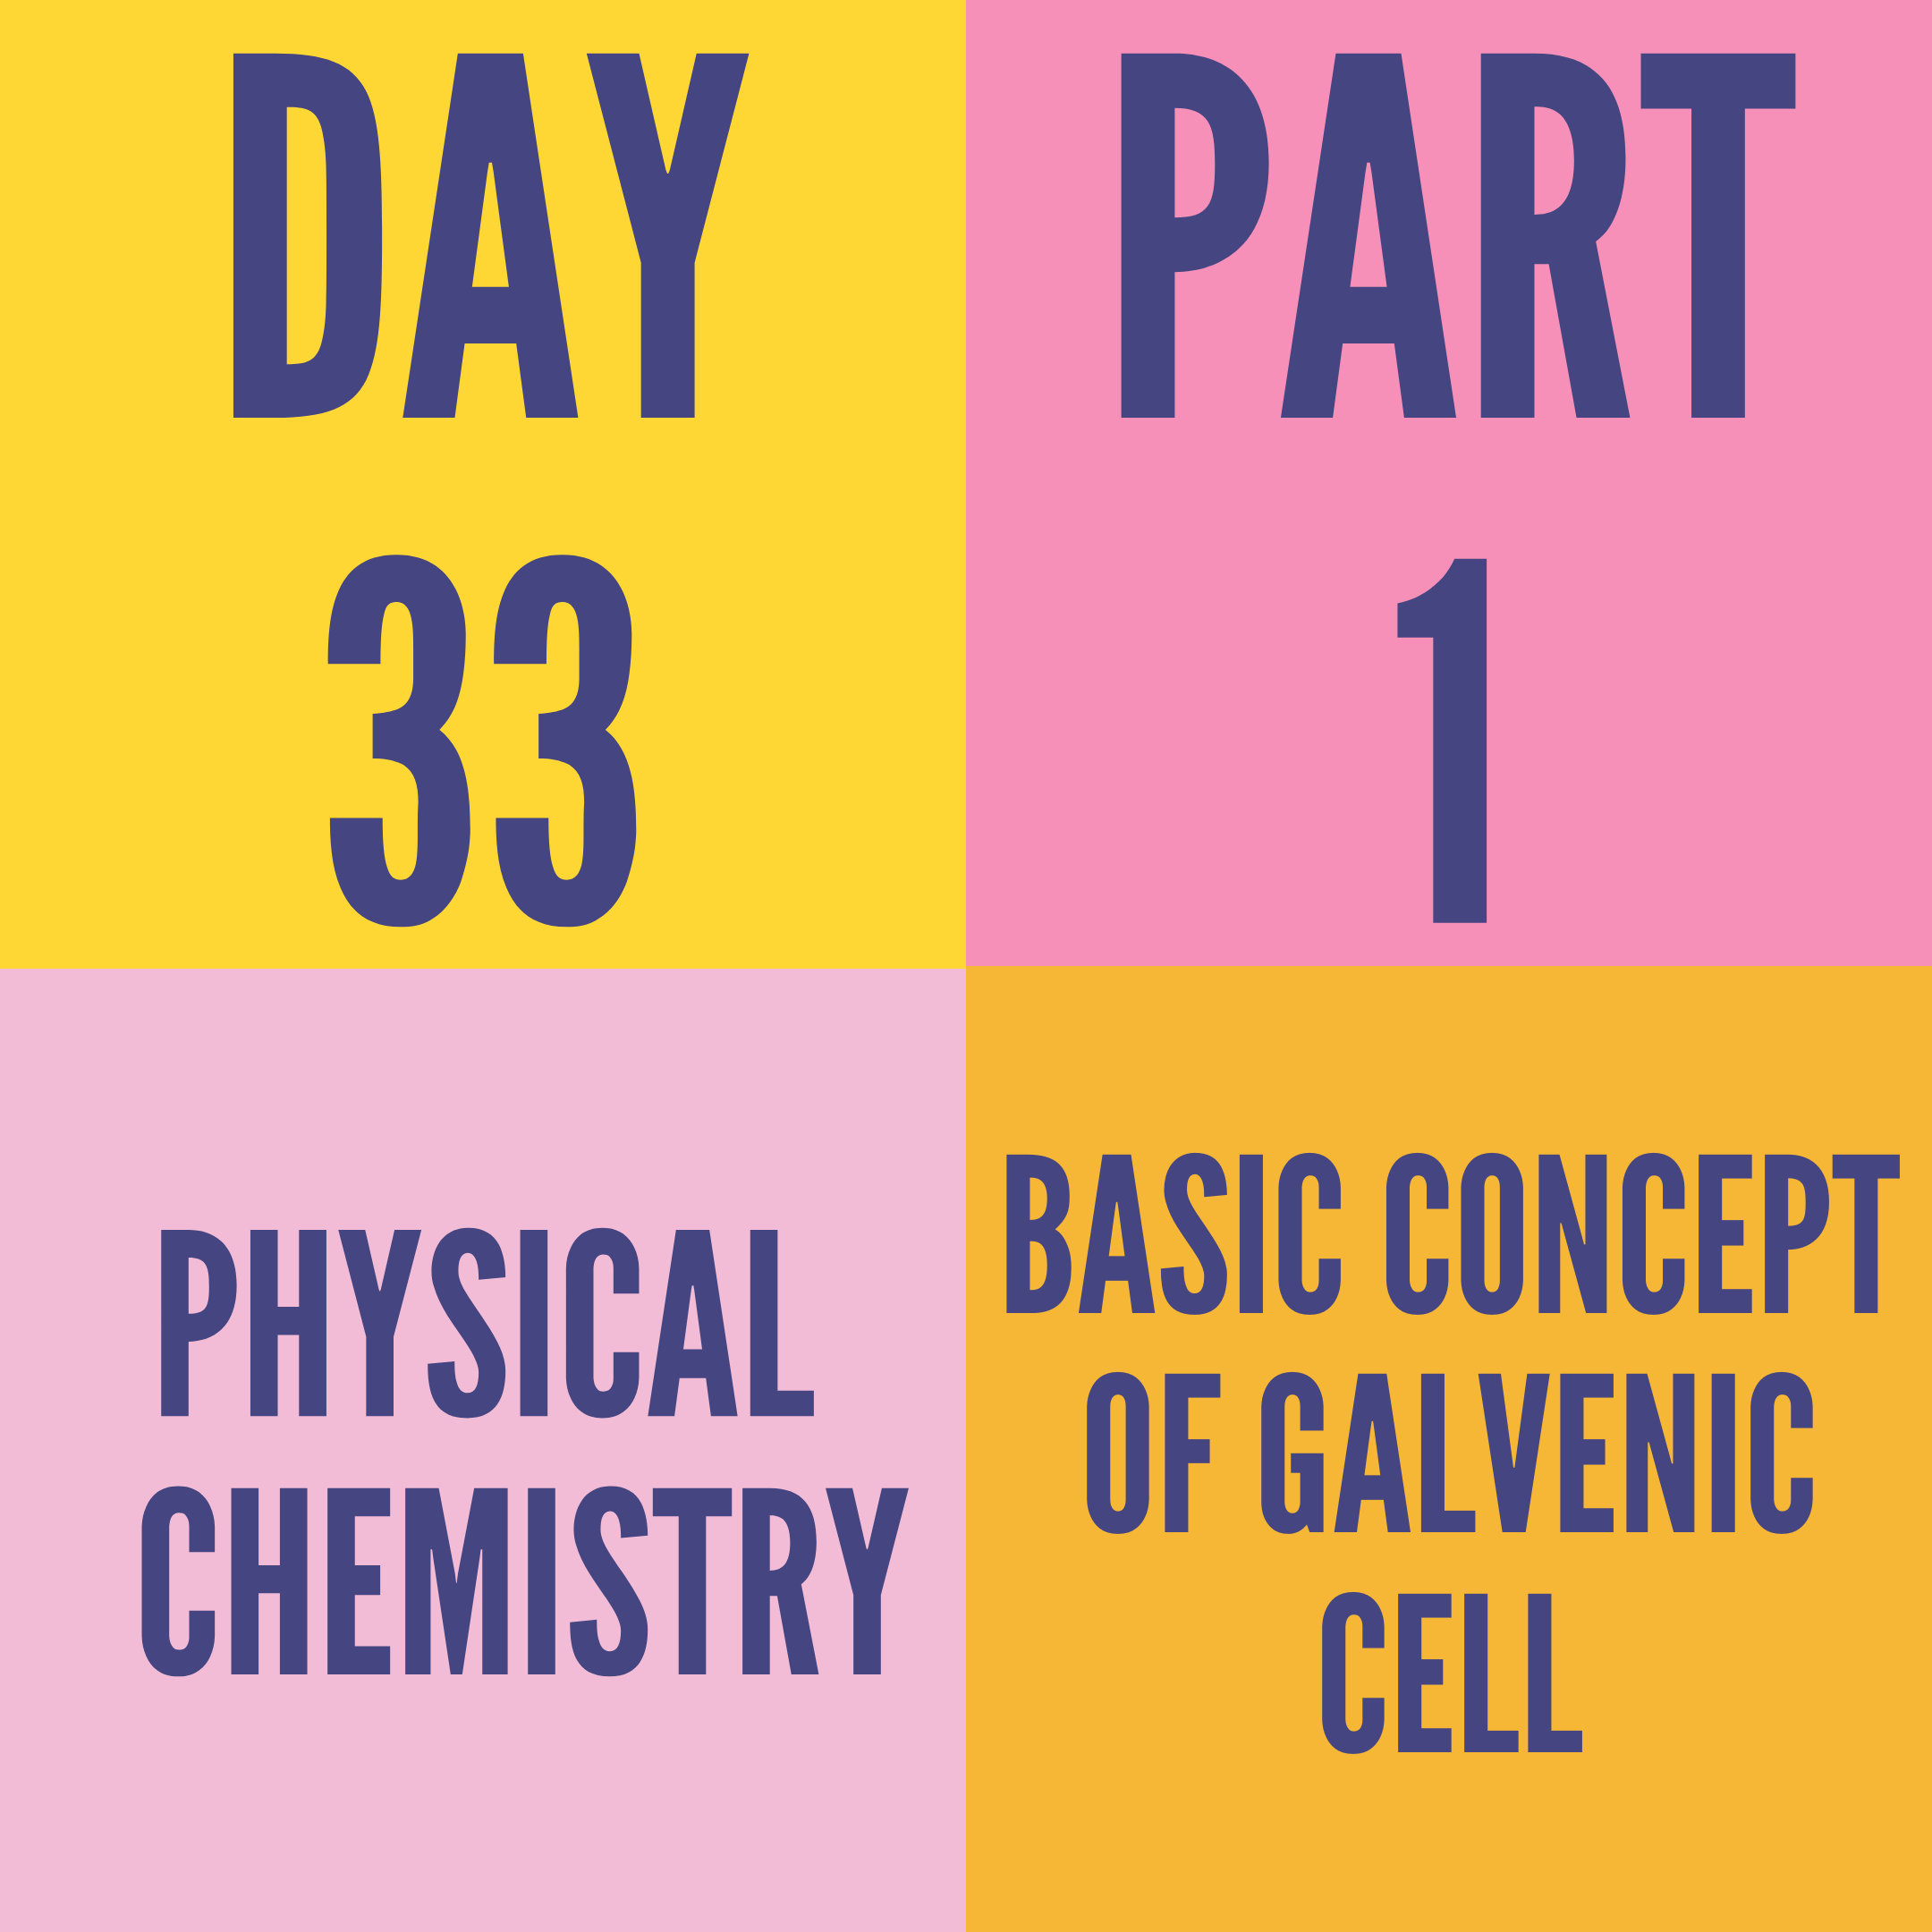 DAY-33 PART-1 BASIC CONCEPT OF GALVENIC CELL